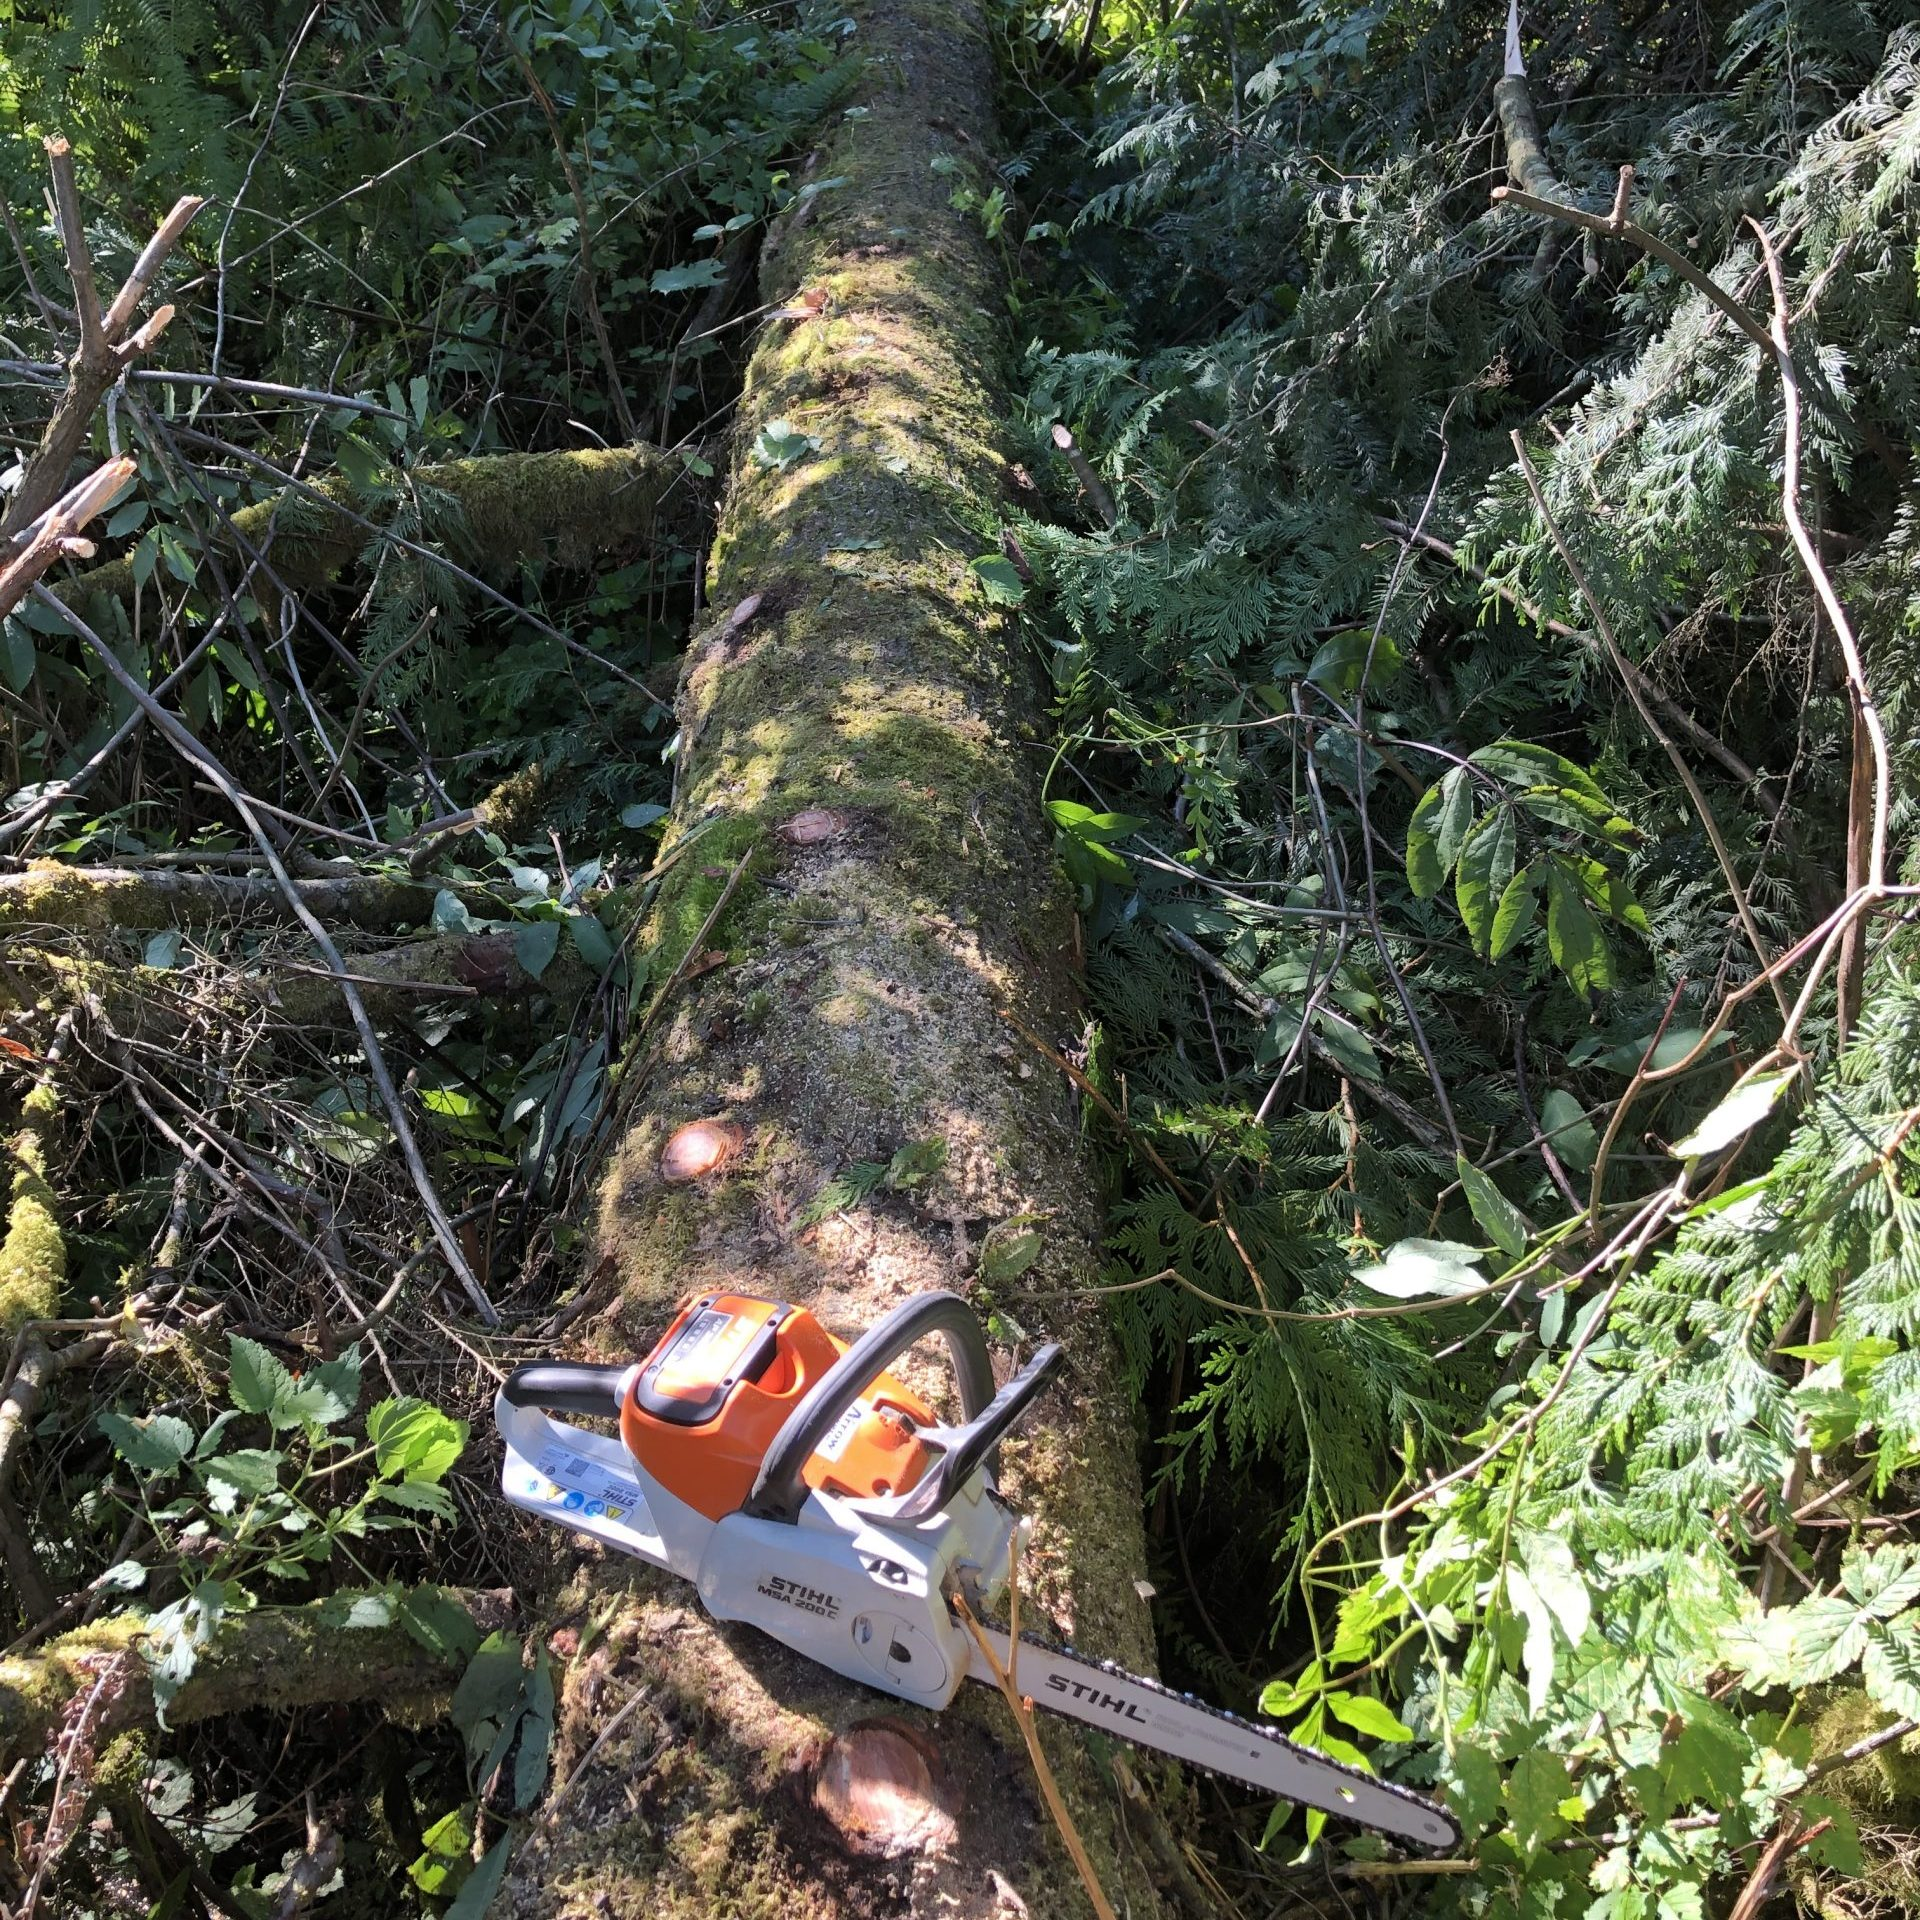 A fallen fir tree trimmed of its branches ready to be amde into a log ride